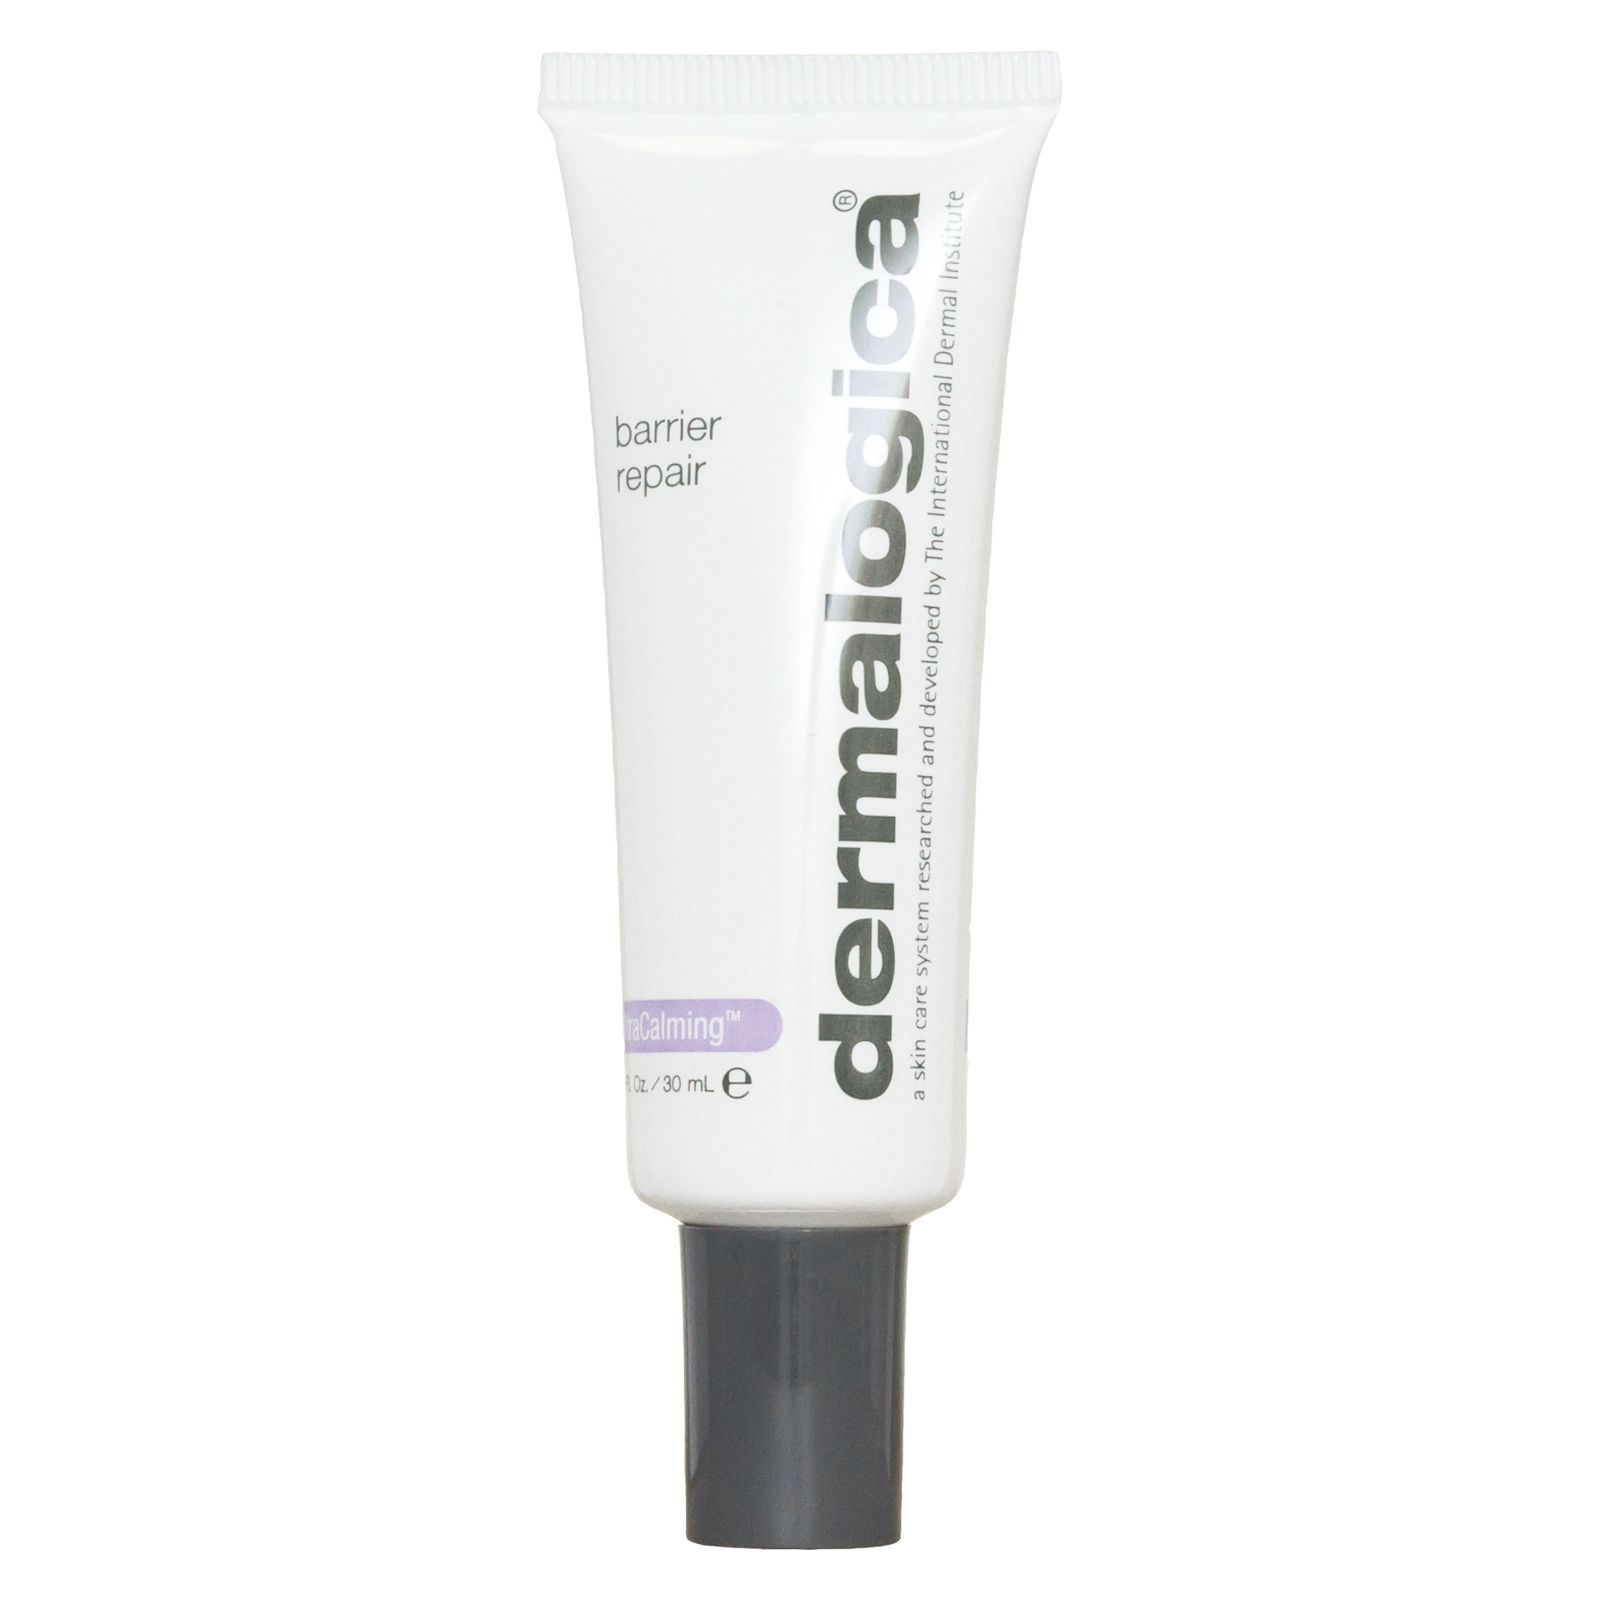 Dermalogica Barrier Repair - Восстановитель барьера 30 мл